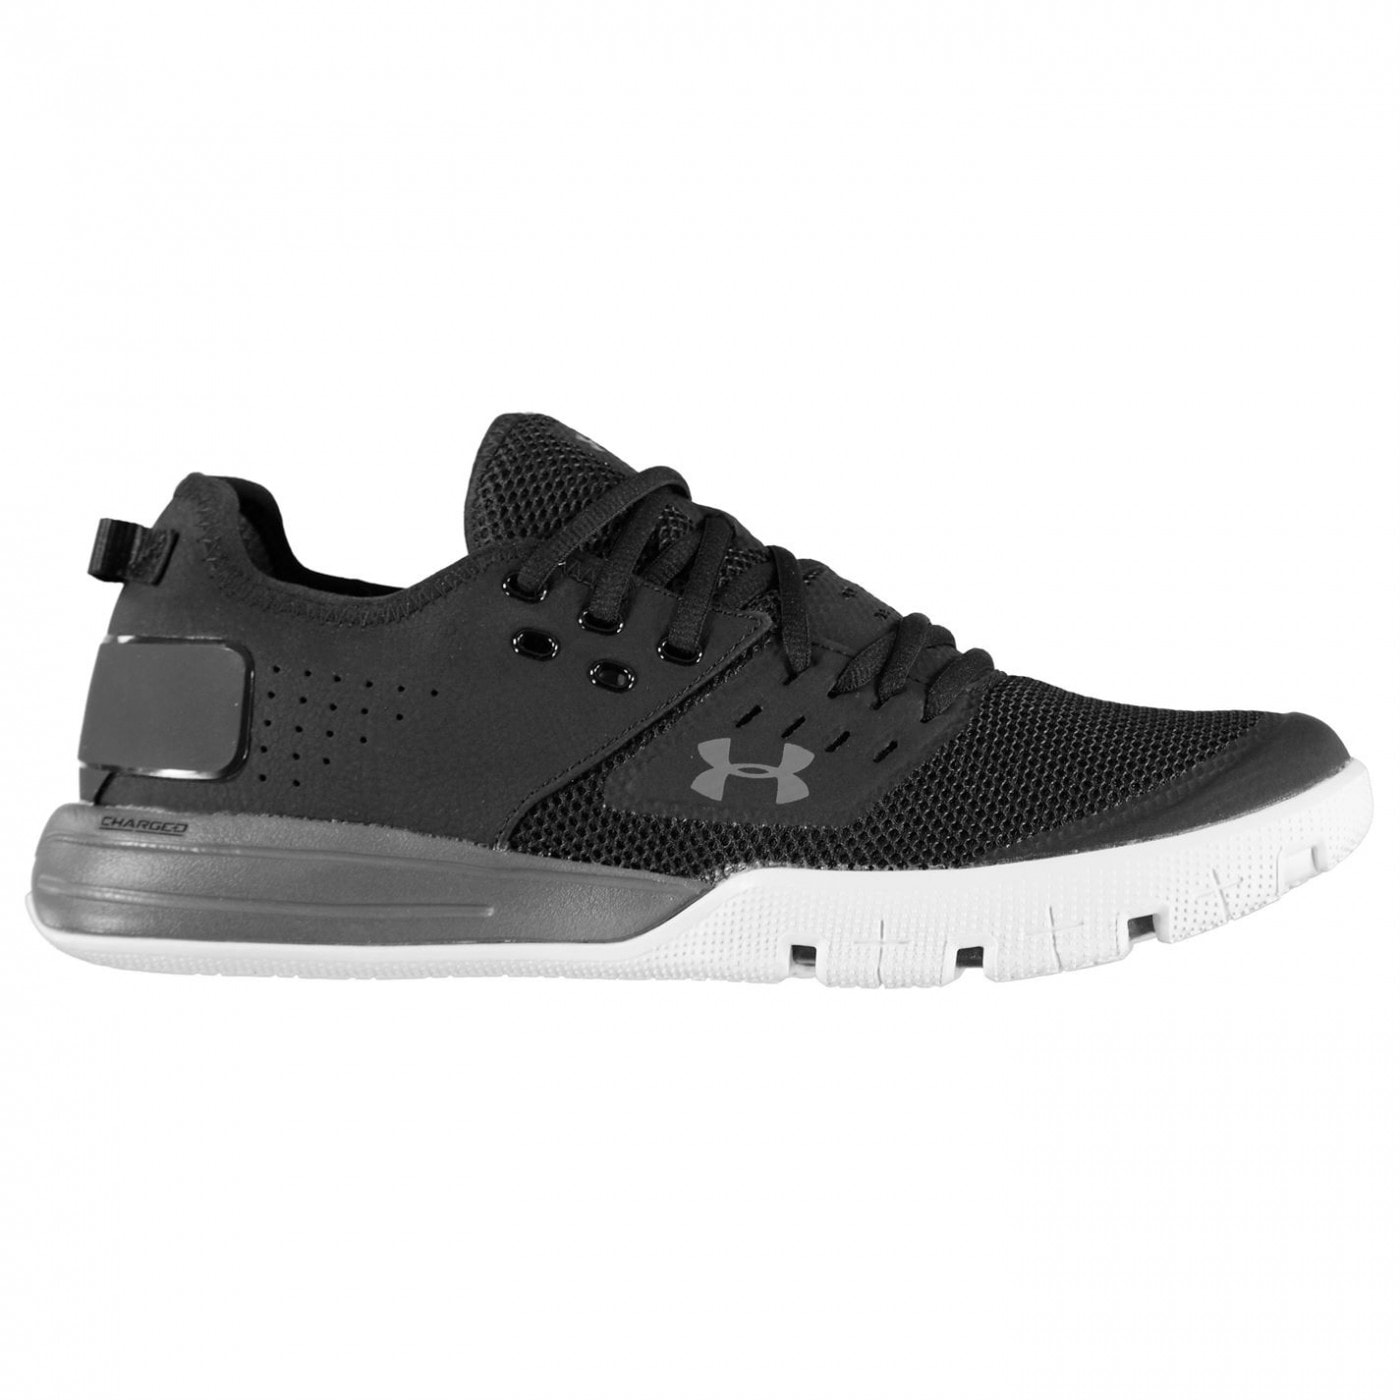 Under Armour Charged Ultimate 3 Training Shoes Mens